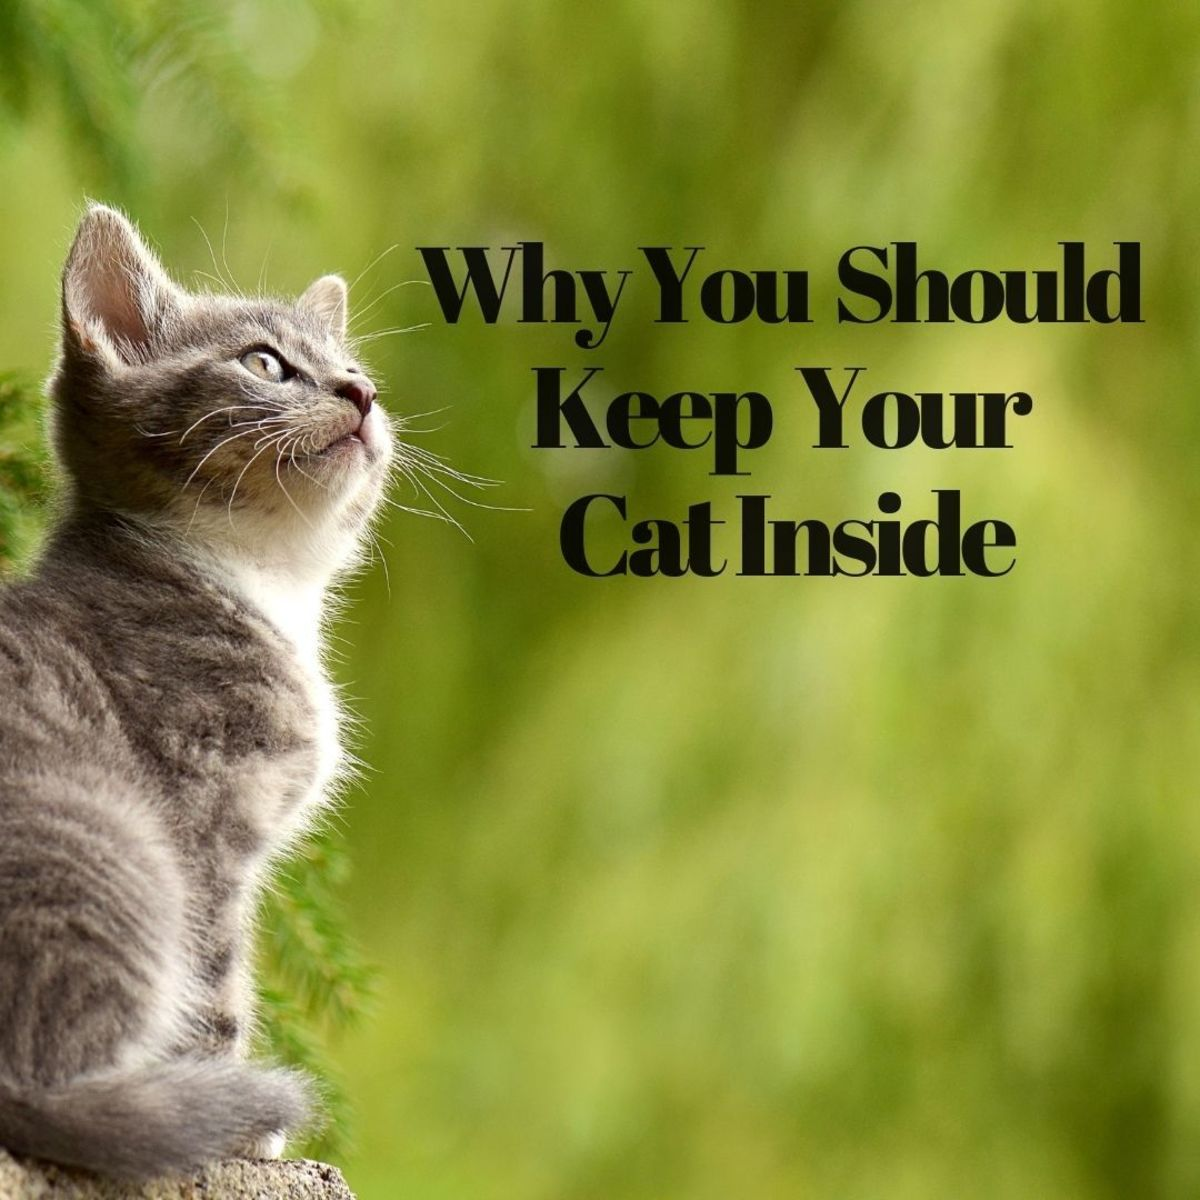 Why you shouldn't let your cat go outside